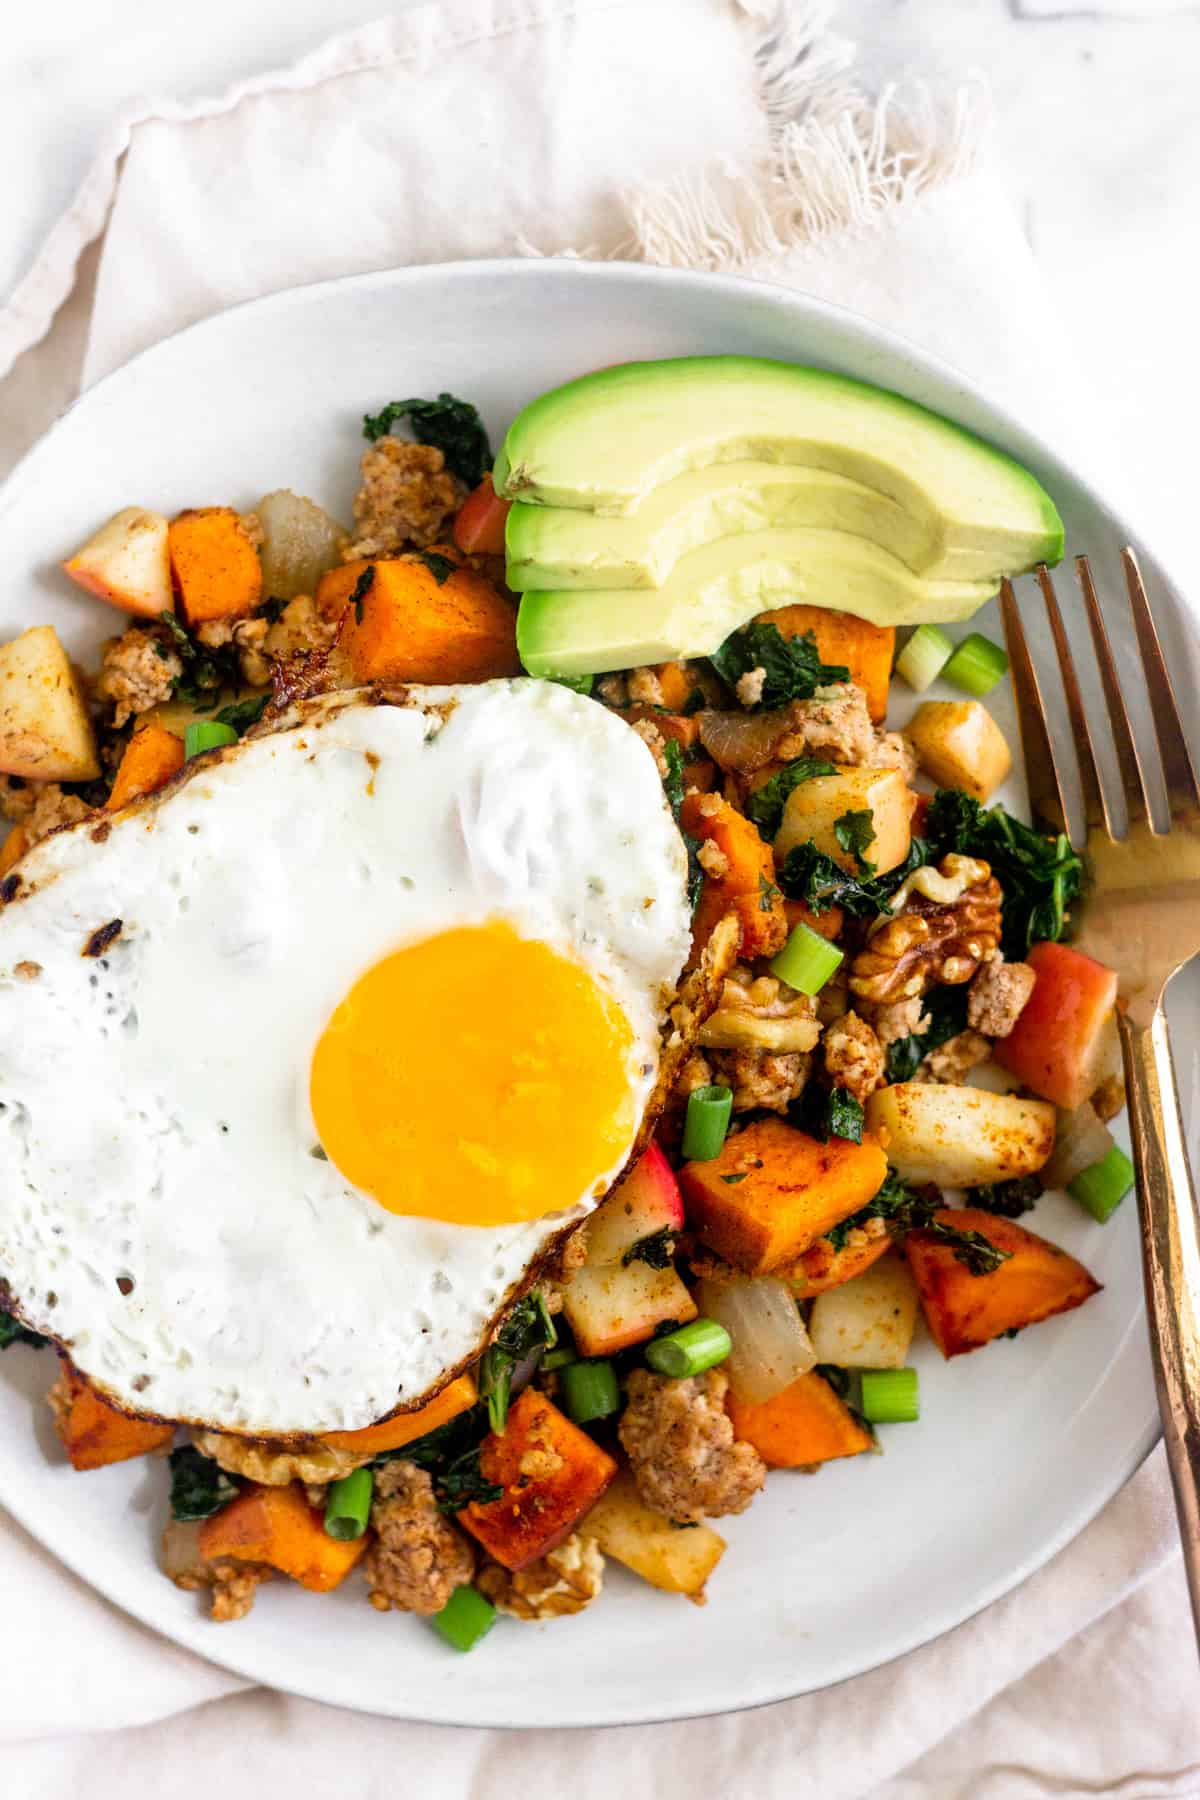 White plate on a tan linen filled with Whole30 Sweet Potato Sausage Hash, a fried egg, sliced avocado, and a bronze fork.